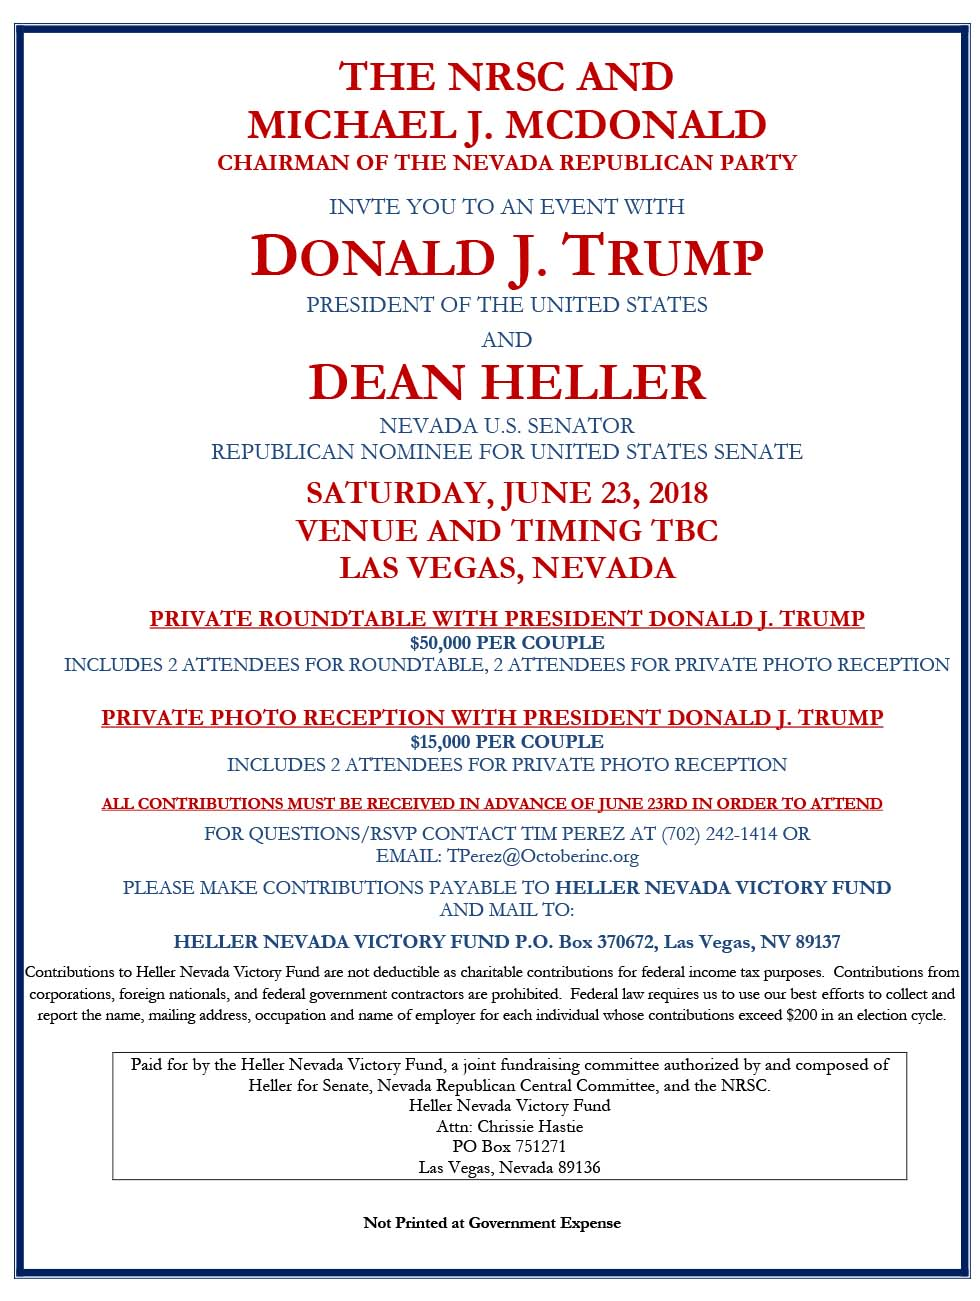 President Donald Trump U.S. Senator Dean Heller Nevada fundraiser Las Vegas Review-Journal